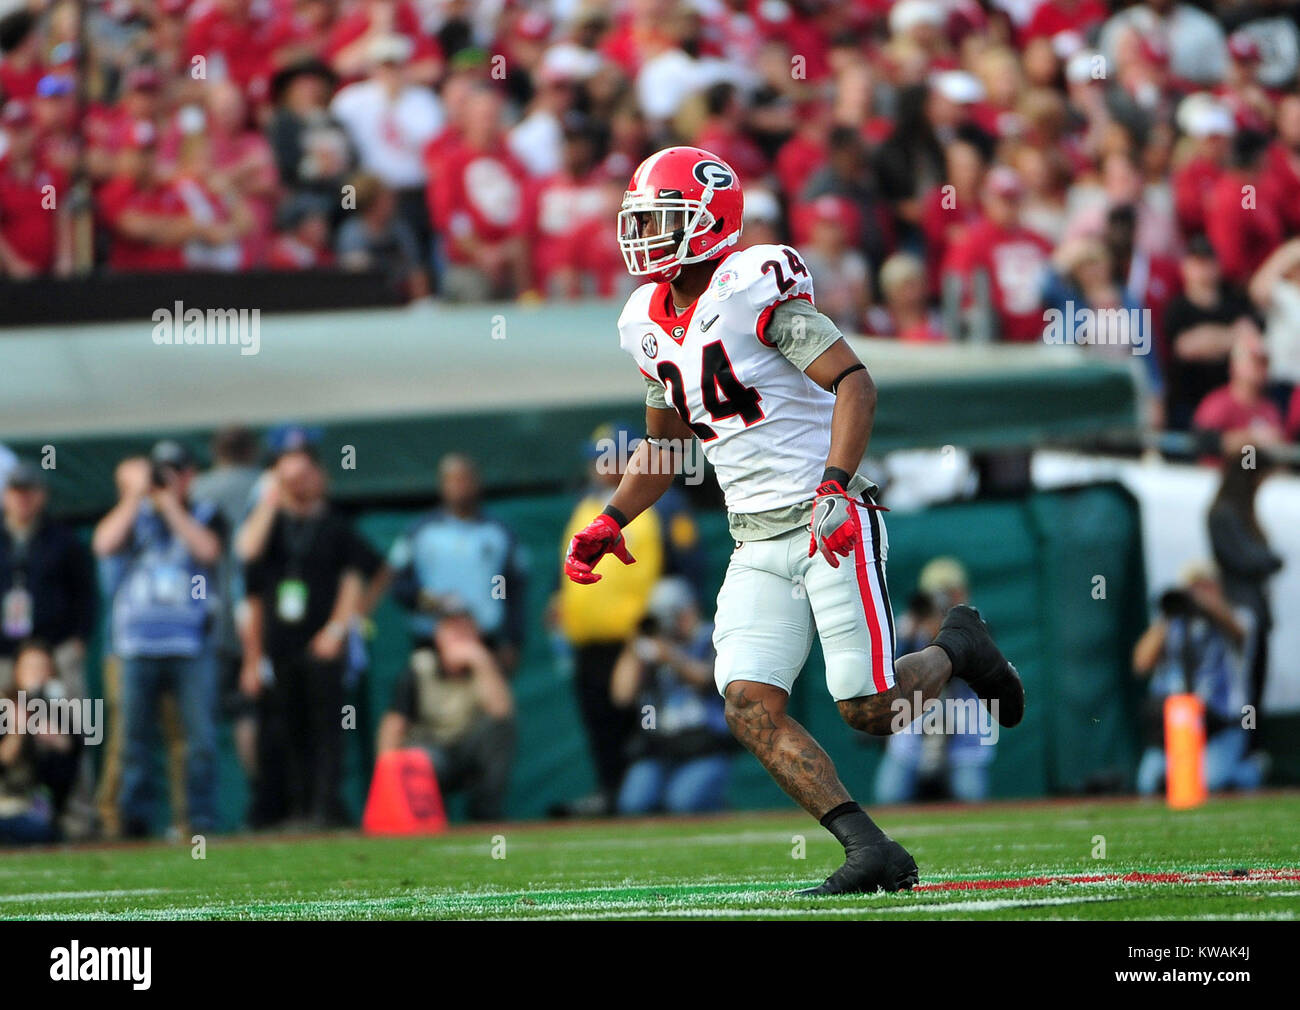 Pasadena, California, USA. 01st Jan, 2018. Georgia Bulldogs safety Dominick Sanders #24 during the 2018 Rose Bowl Stock Photo